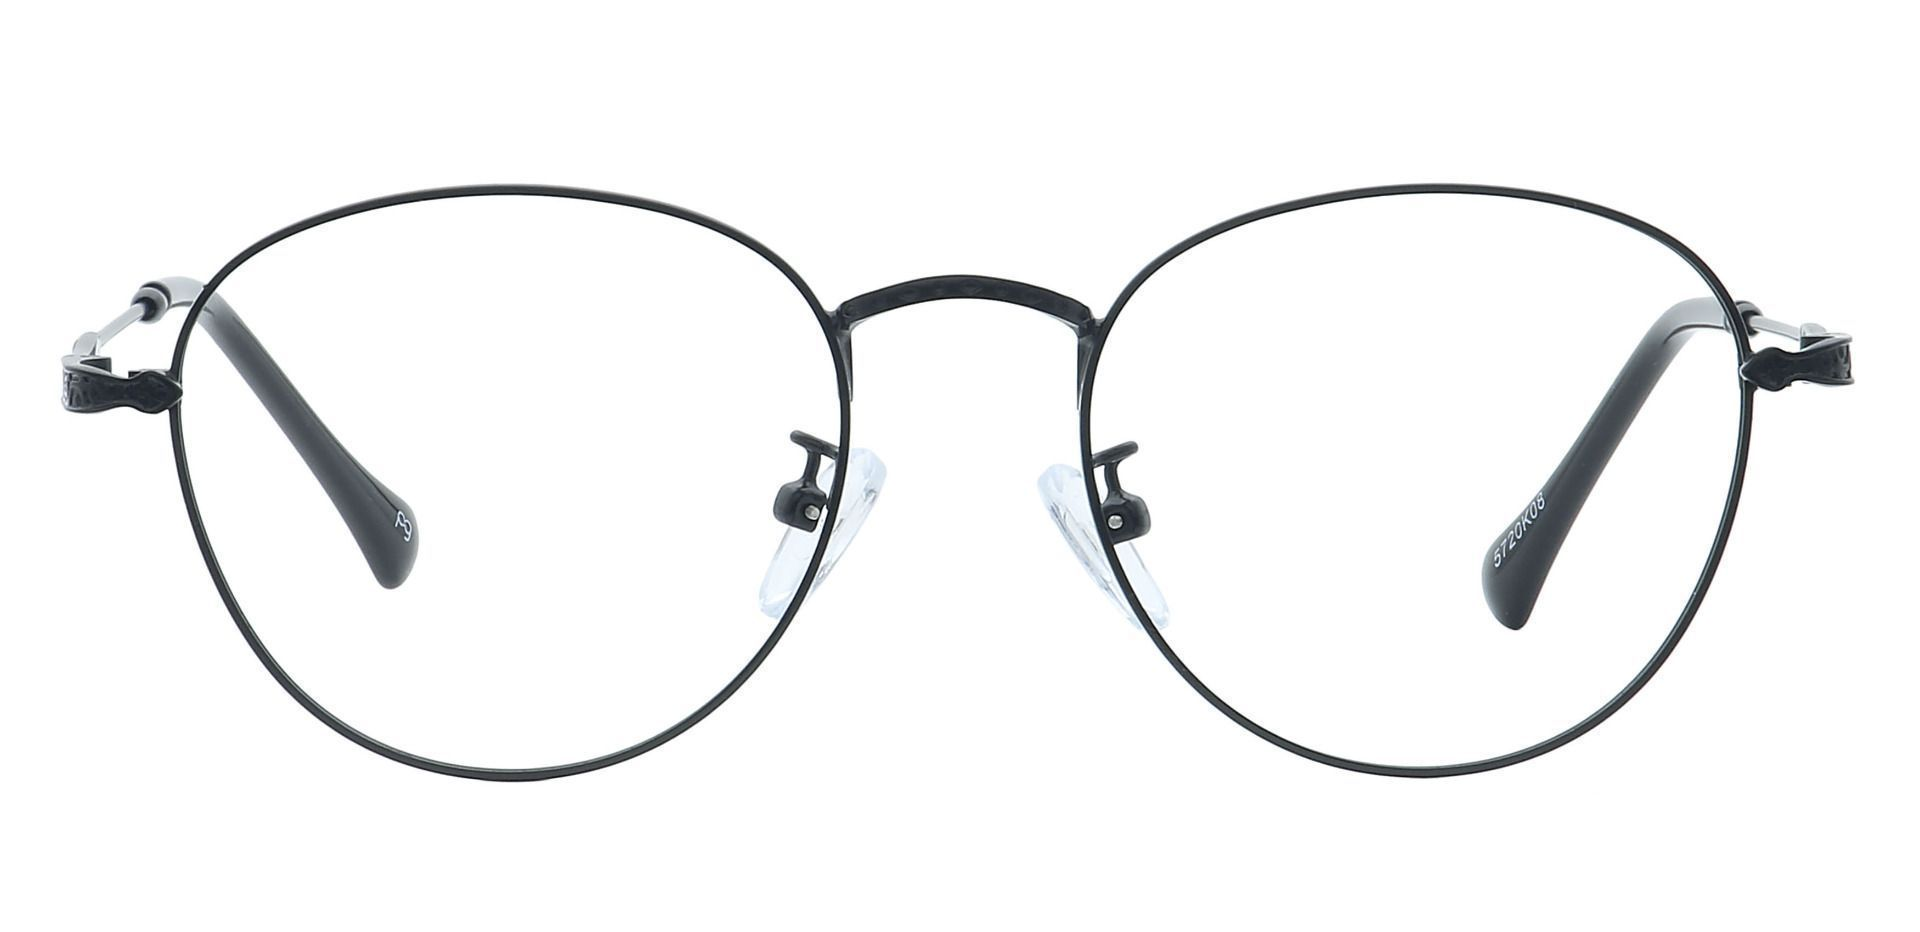 Shawn Oval Prescription Glasses - Black